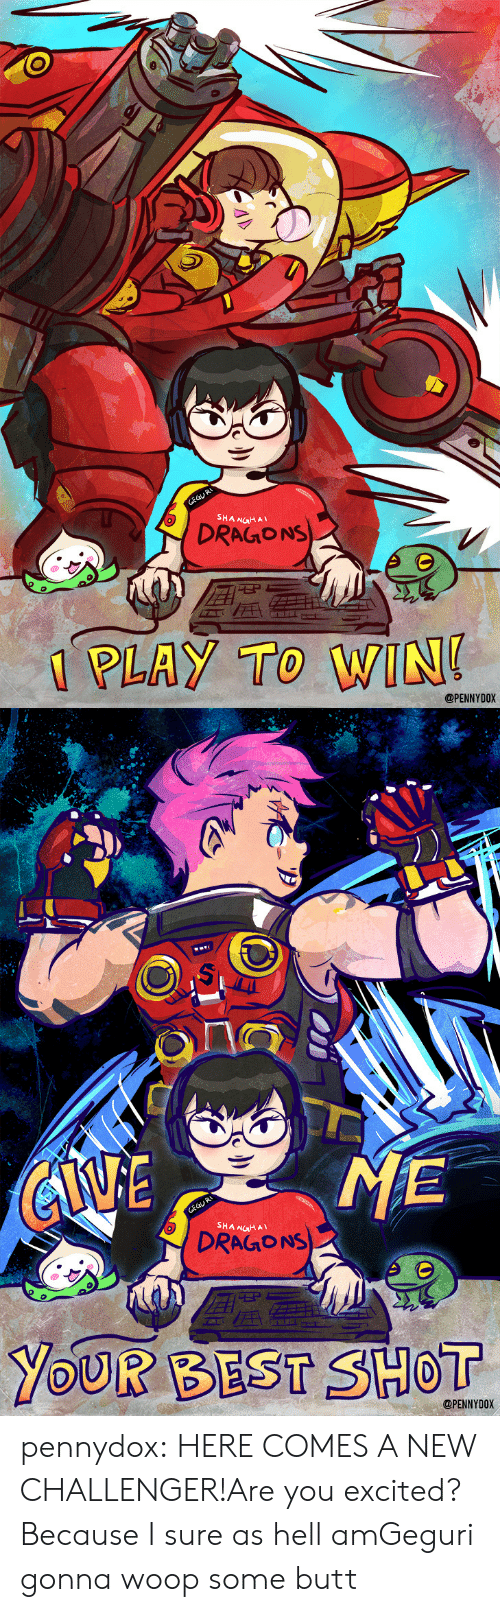 Challenger: SHA NGHAL  DRAGIONS  1 PLAY TO WIN  @PENNYDOX   Si  ov  SHANGHA  DRAGIONS  YOUR BEST SHOT  @PENNYDOX pennydox:  HERE COMES A NEW CHALLENGER!Are you excited? Because I sure as hell amGeguri gonna woop some butt